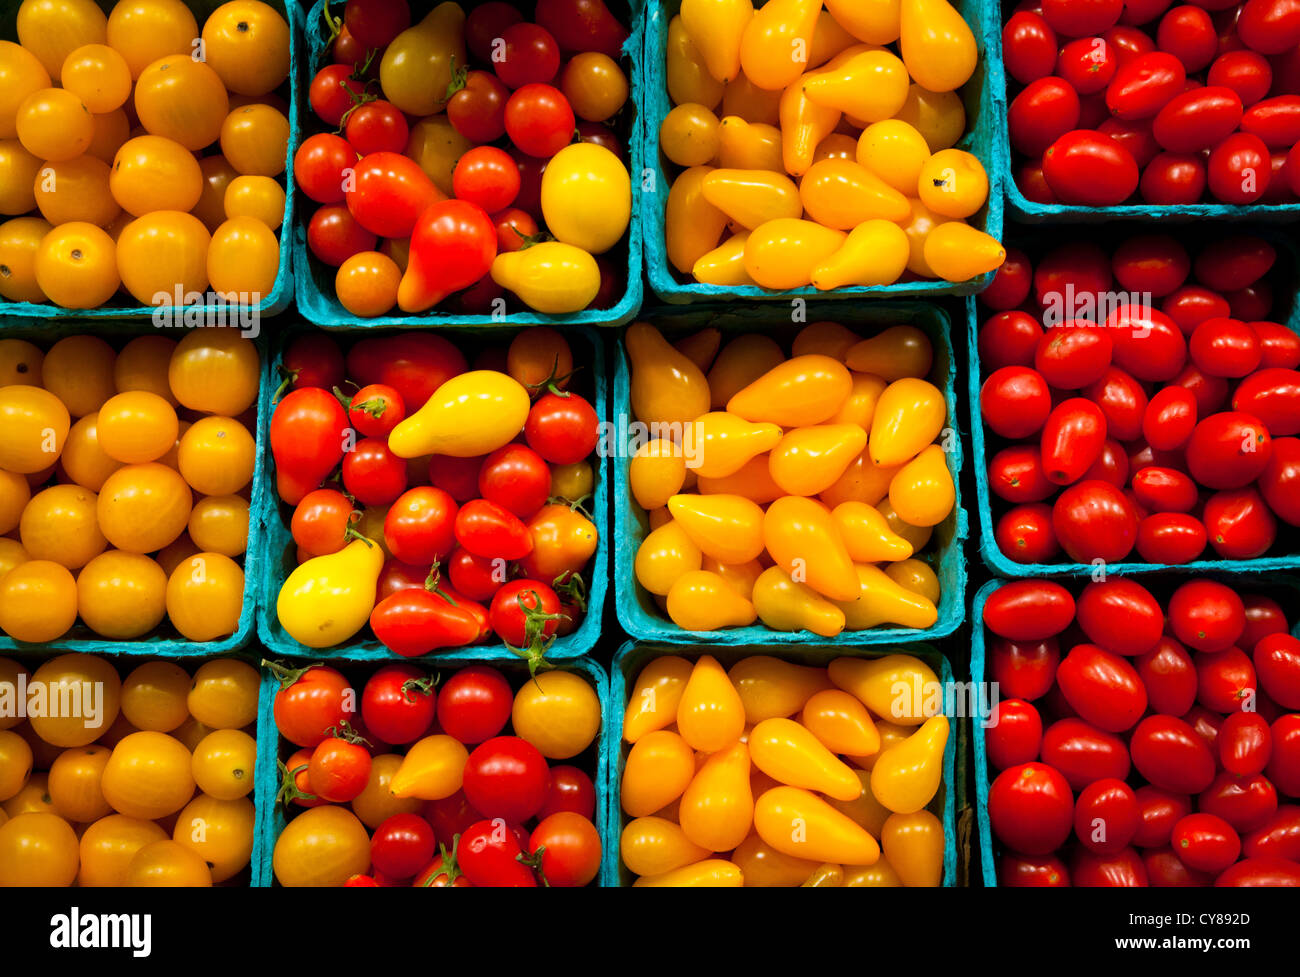 Cherry tomatoes at Pike Place Market in central Seattle, Washington - Stock Image